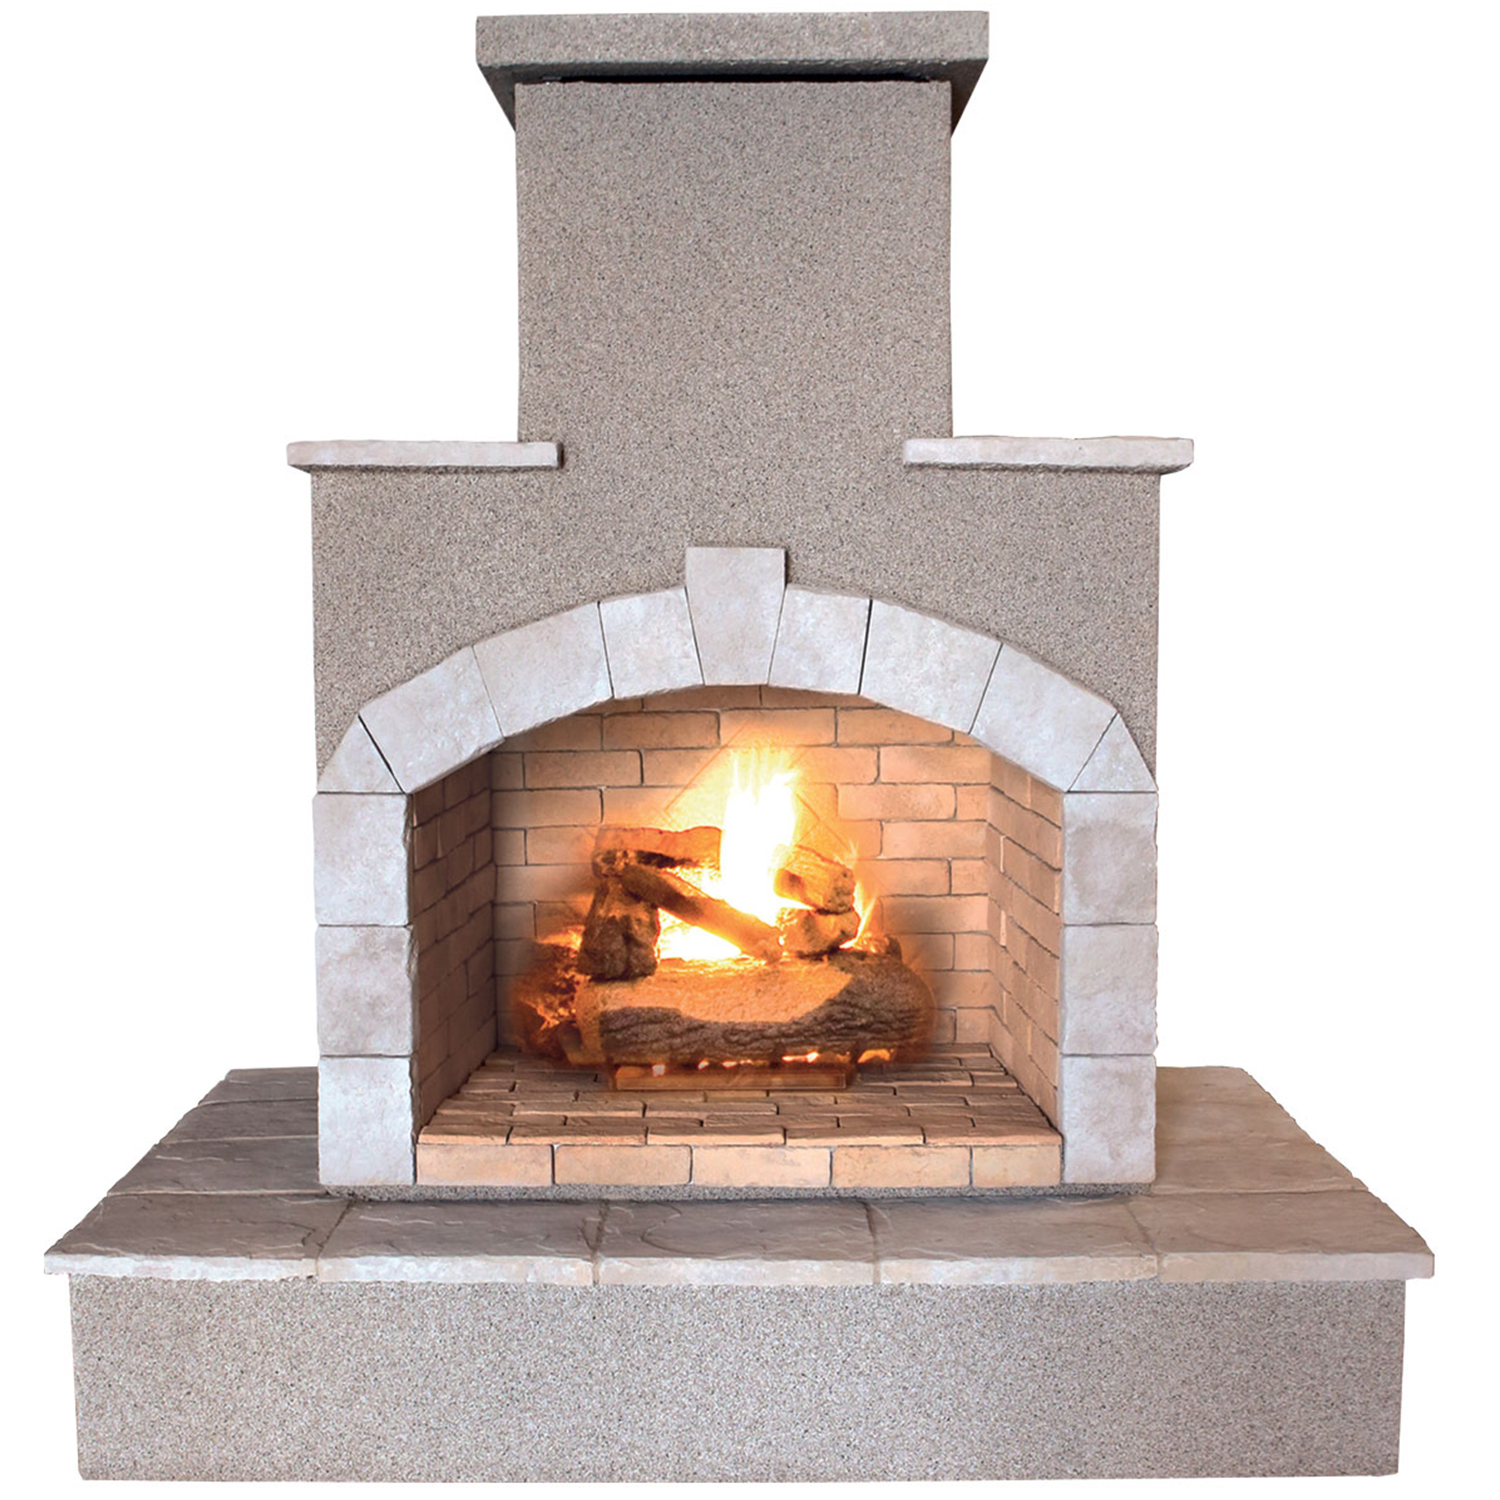 78 in. Propane Gas Outdoor Fireplace by Lloyds Material Supply